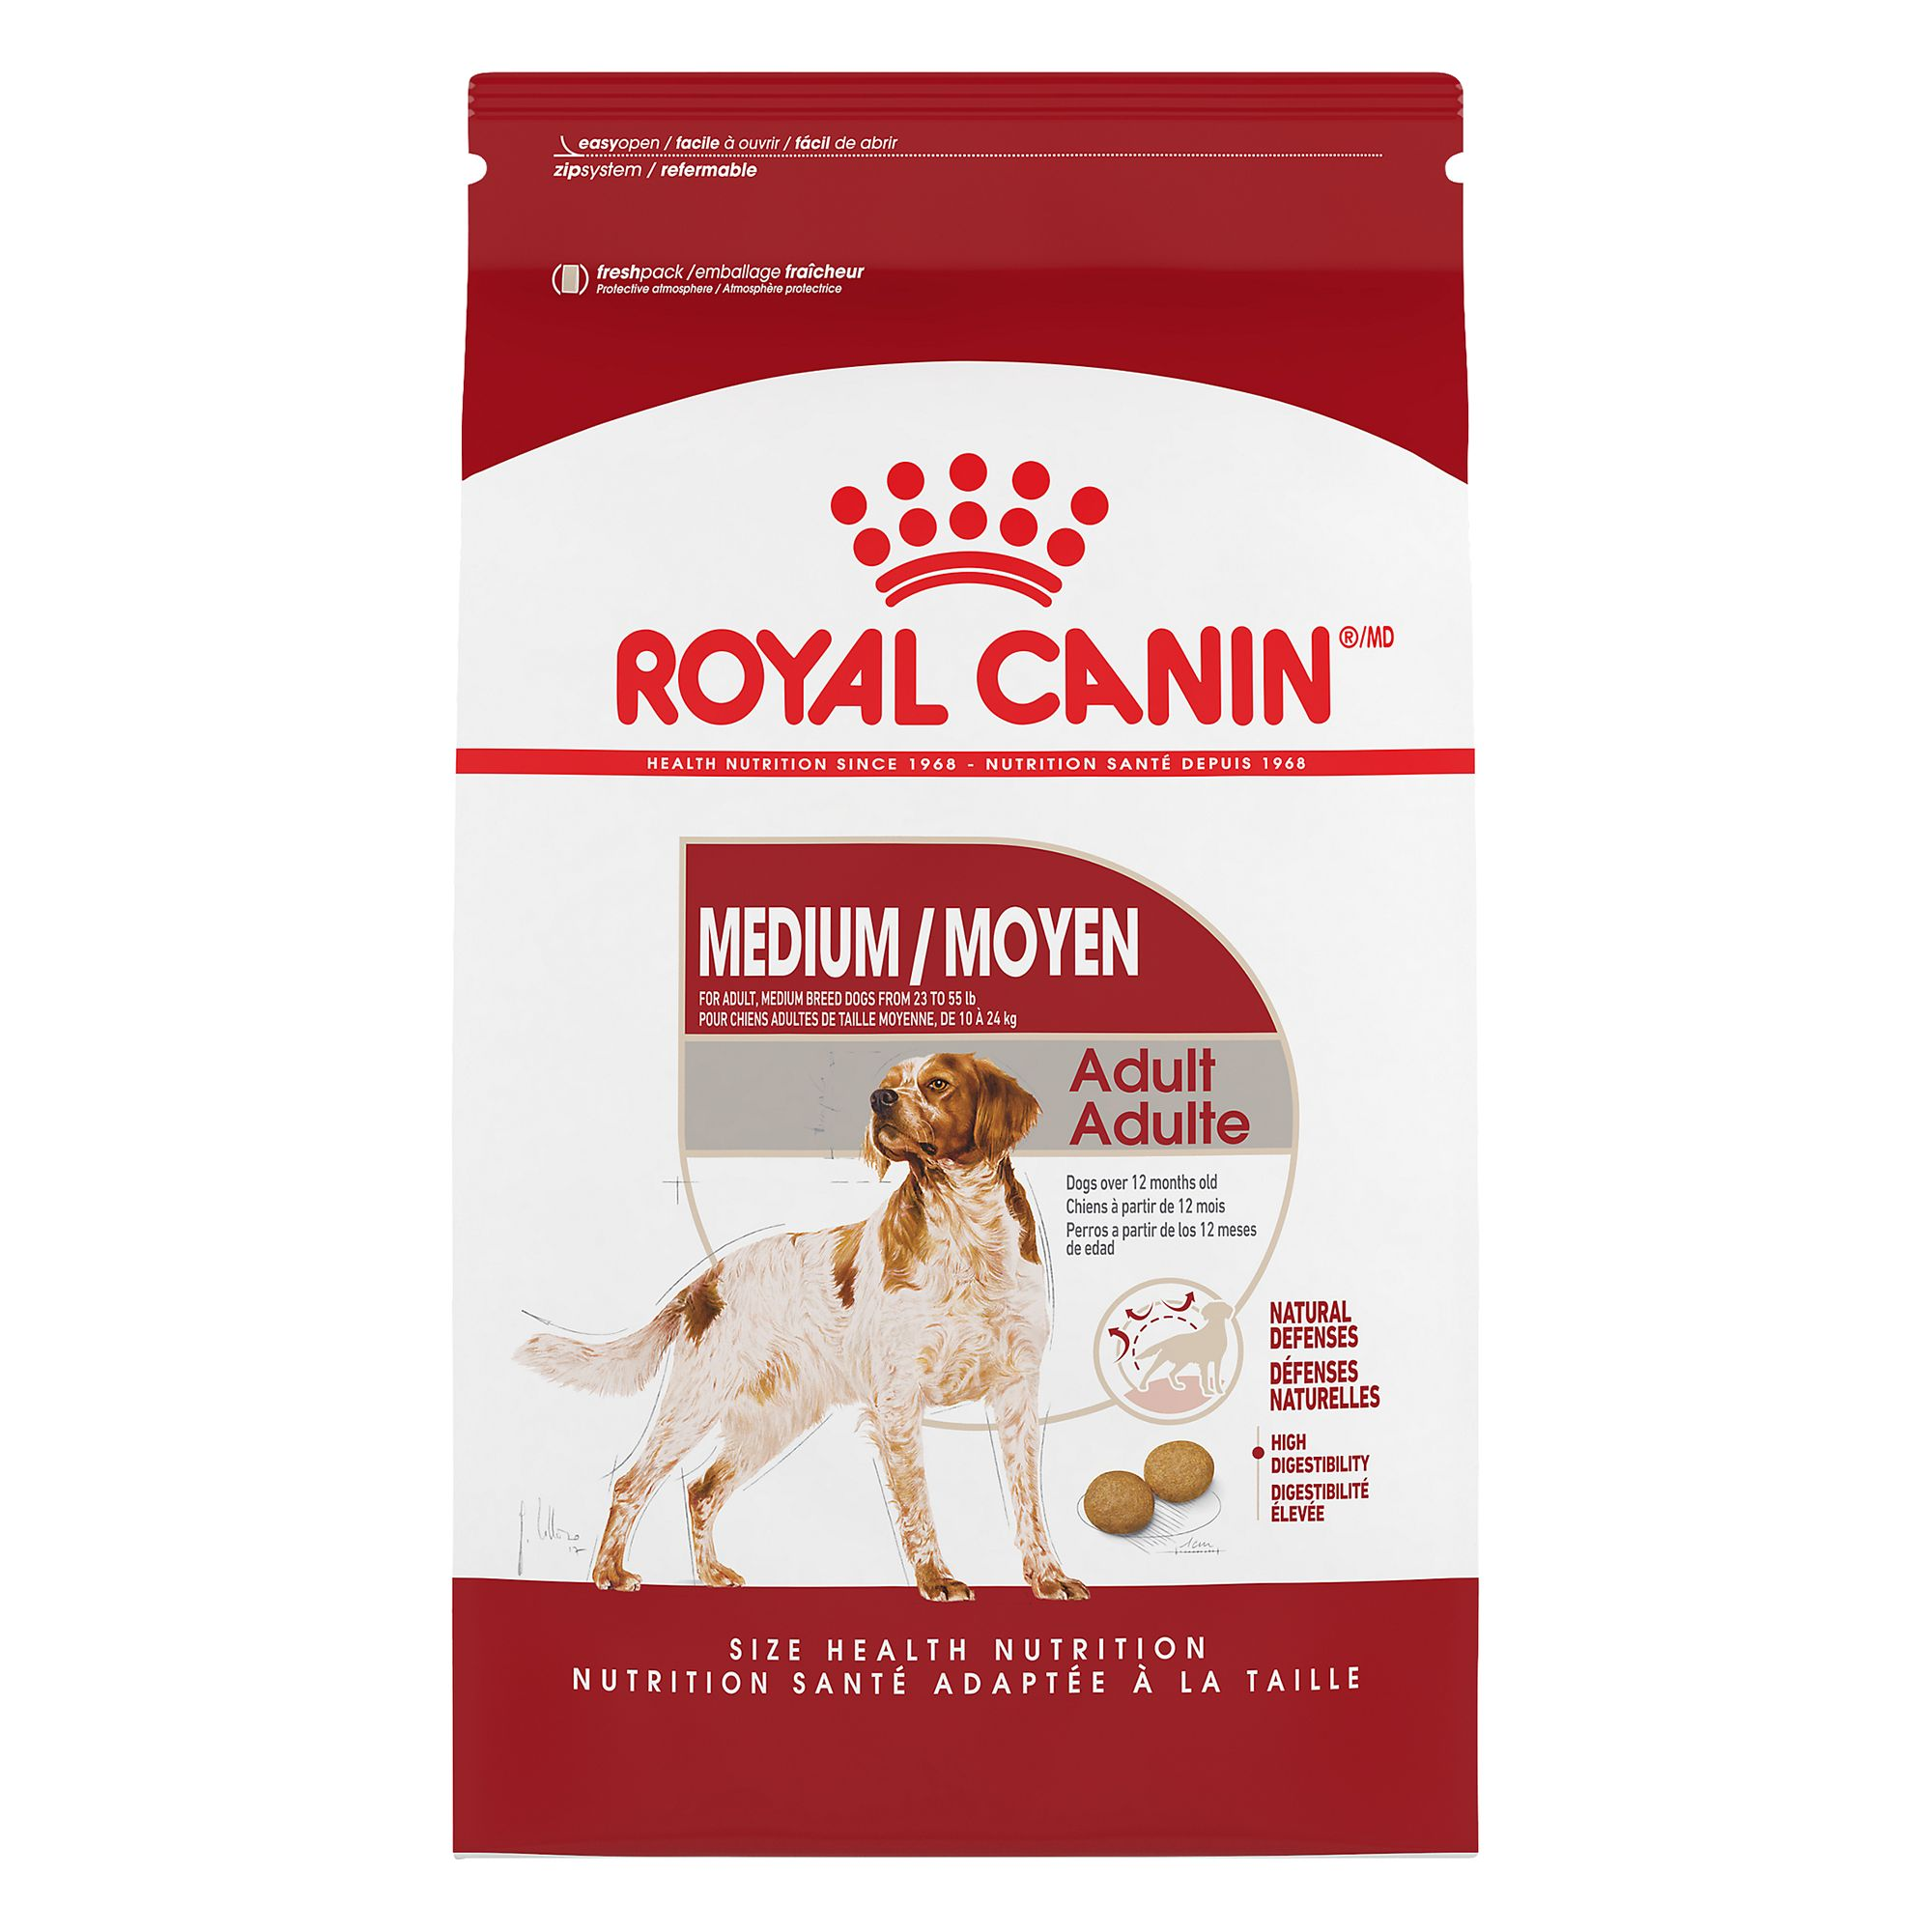 Royal Caninreg Size Health Nutrition Medium Adult Dog Food size 30 Lb